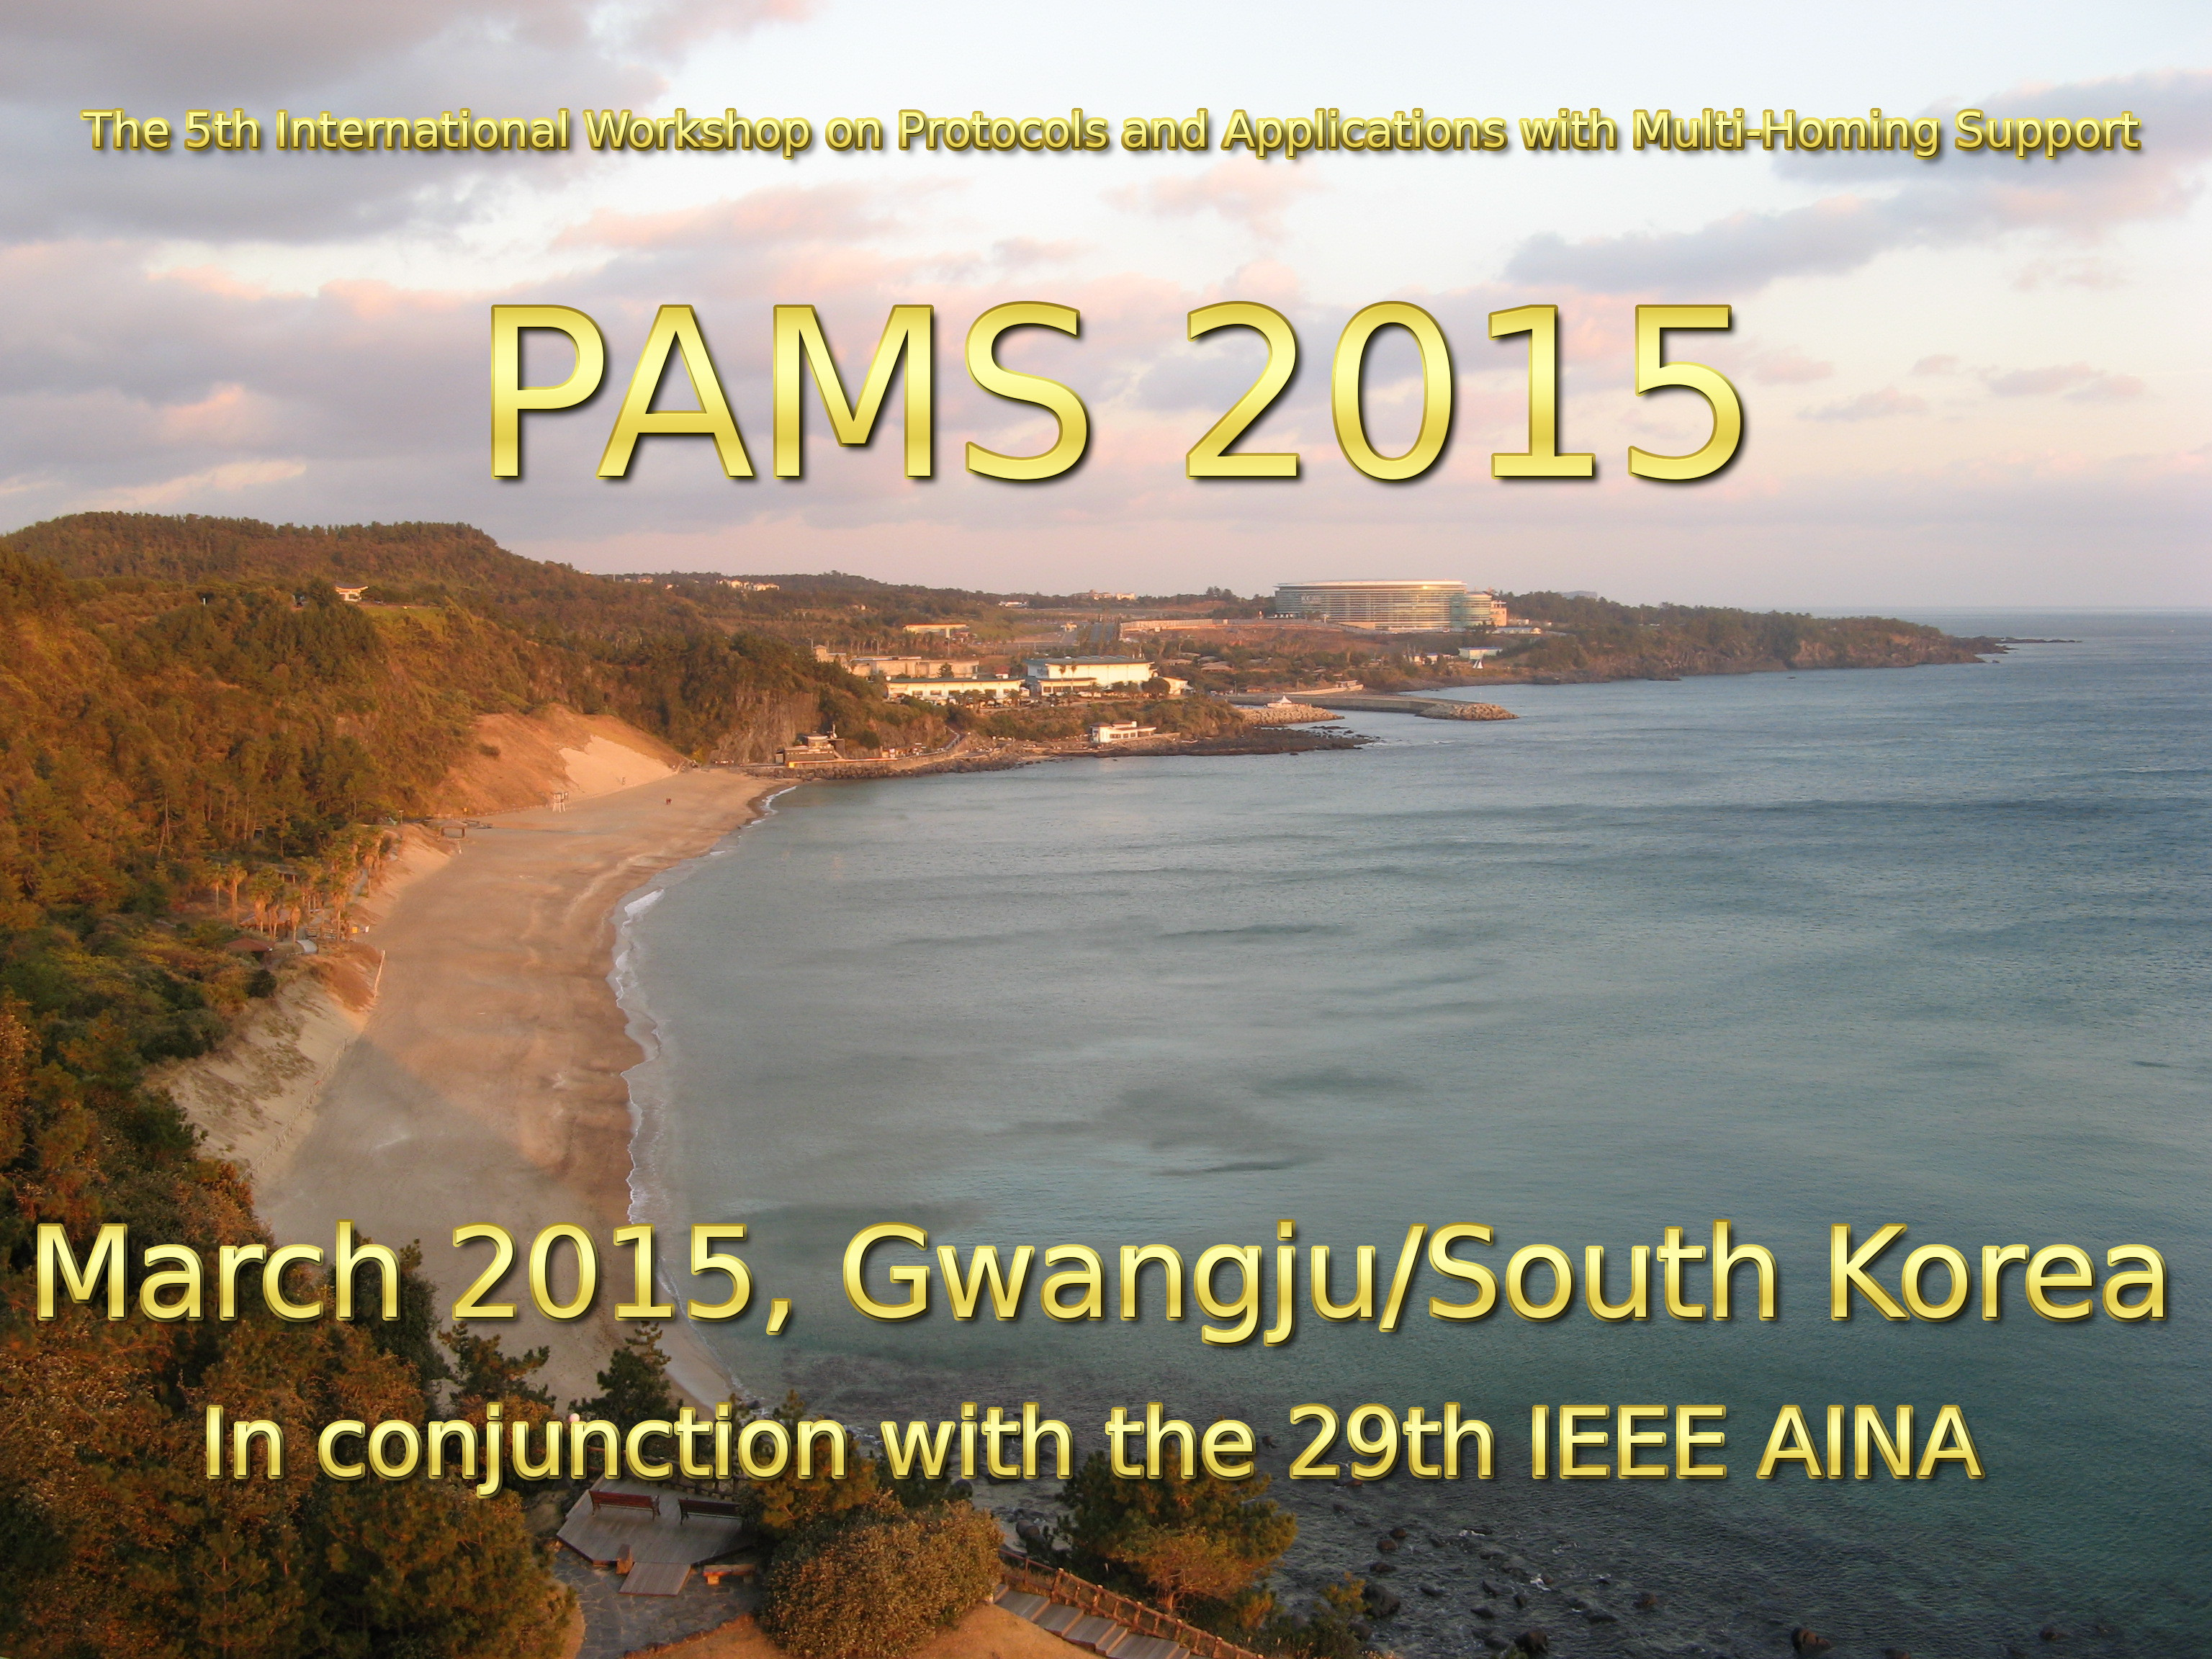 Logo of the PAMS 2015